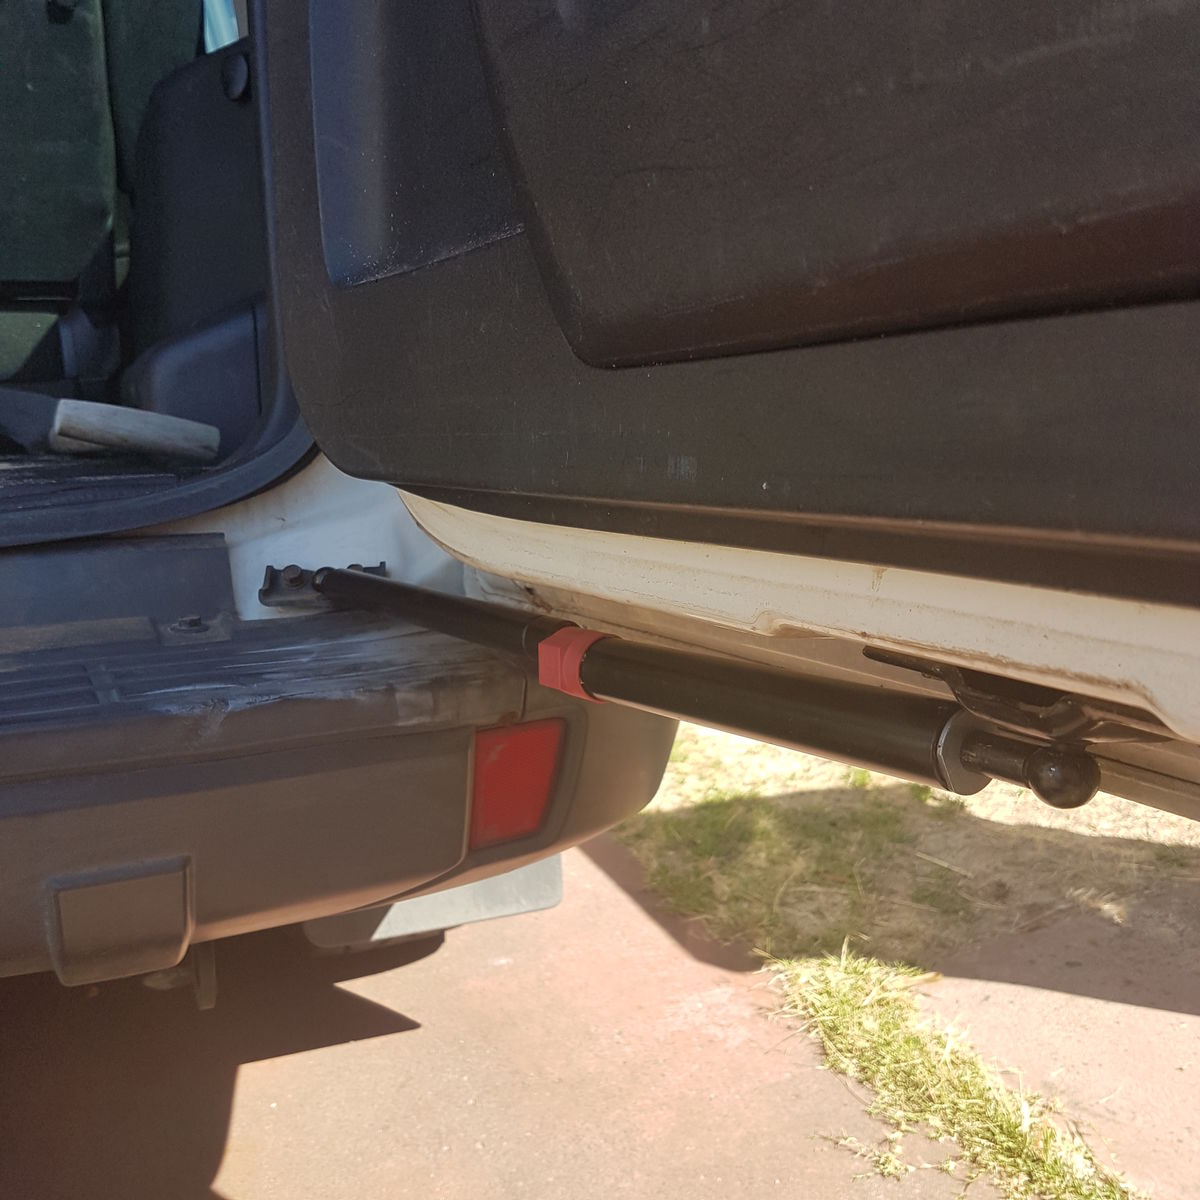 NS,NT,NW,NX Pajero Rear Door Strut - product images  of